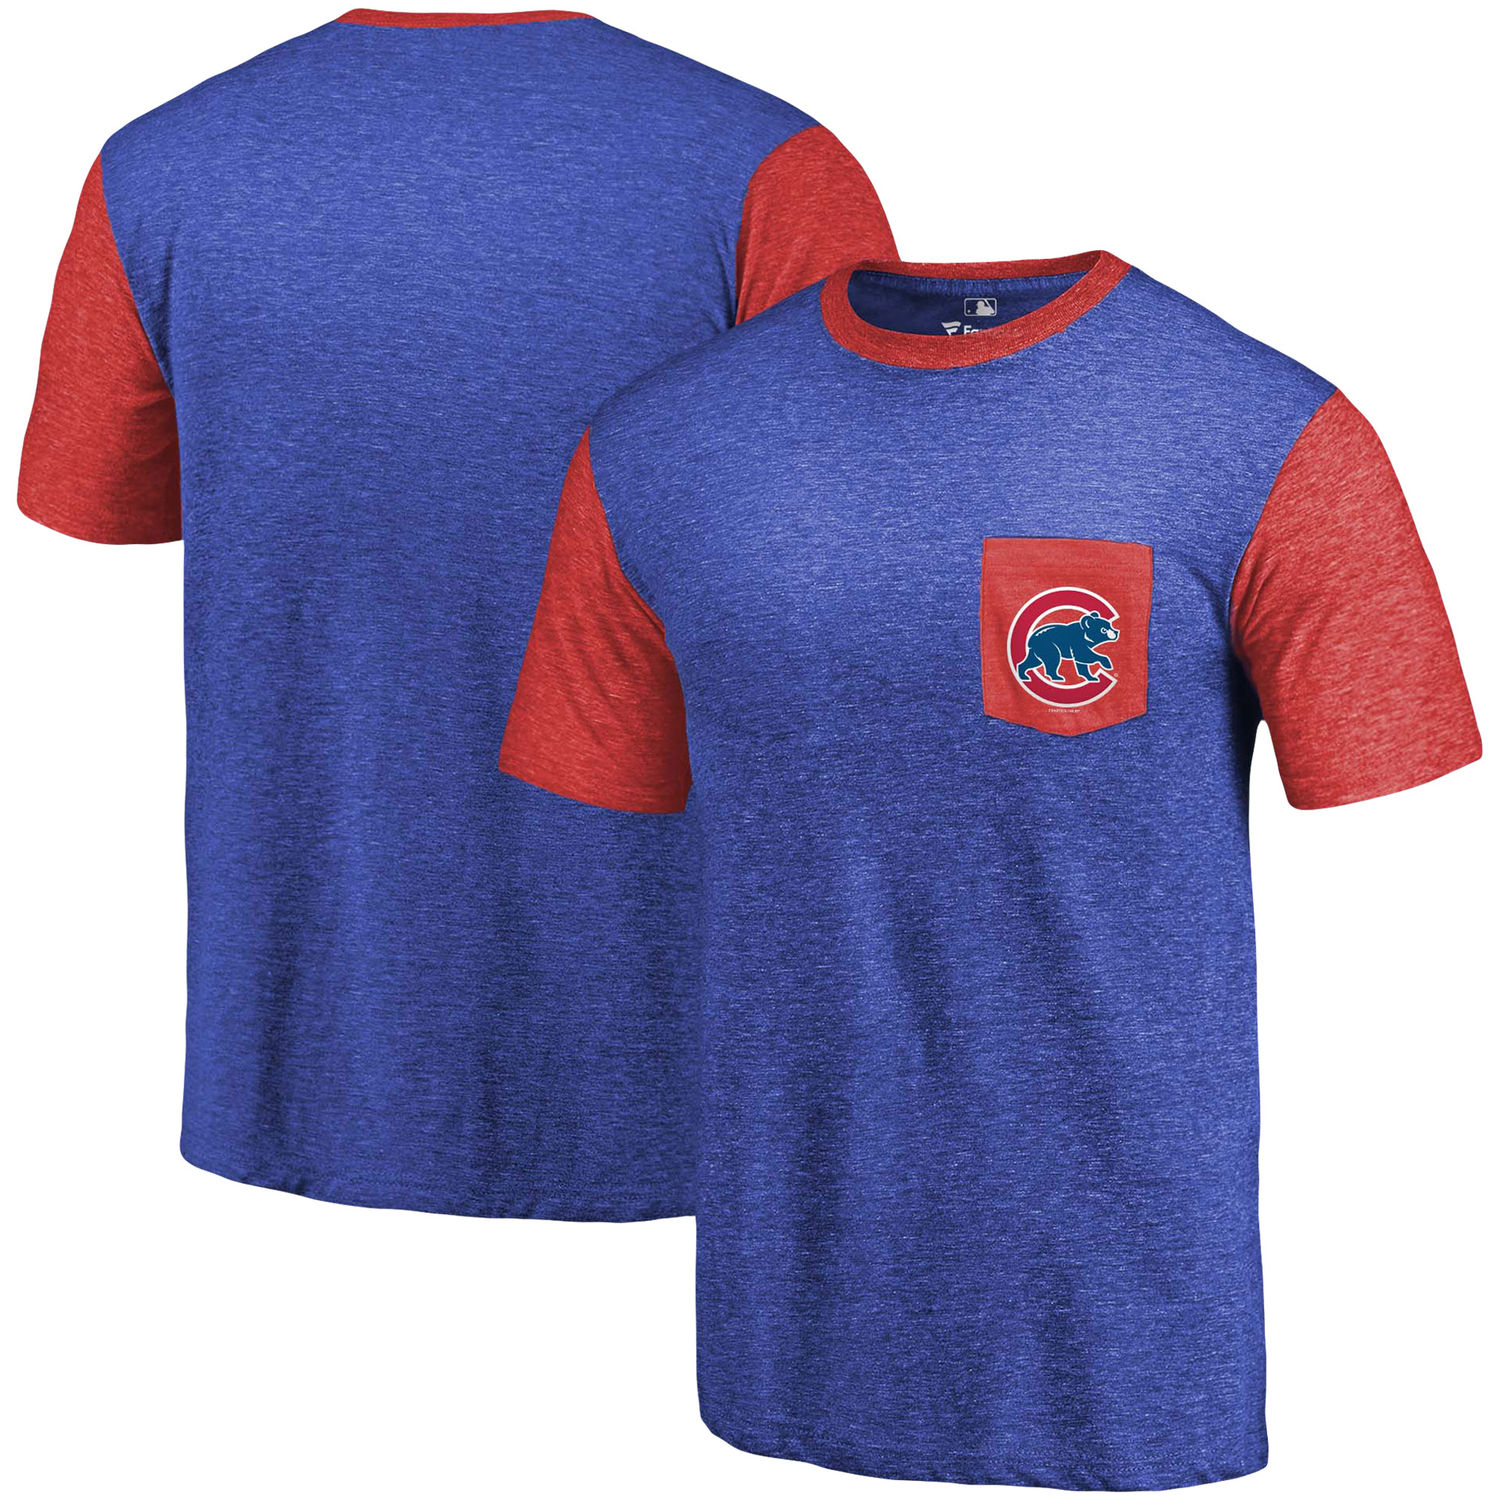 Men's Chicago Cubs Fanatics Branded Royal-Red Refresh Pocket T-Shirt